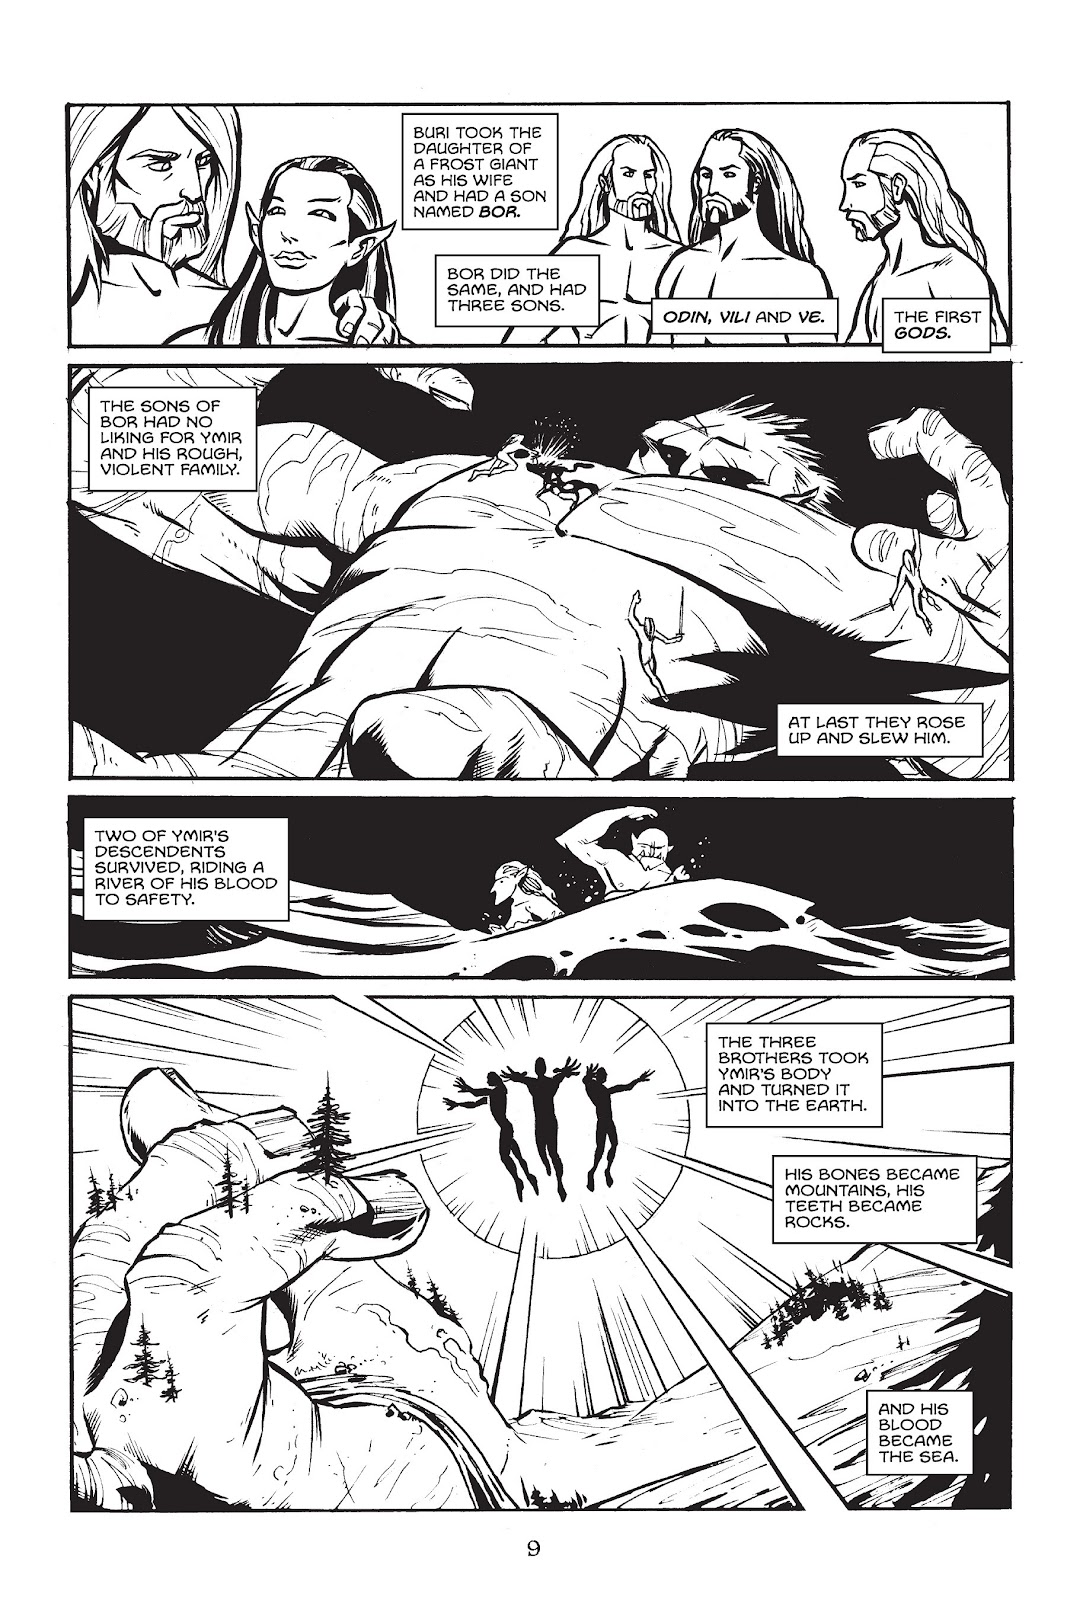 Read online Gods of Asgard comic -  Issue # TPB (Part 1) - 10